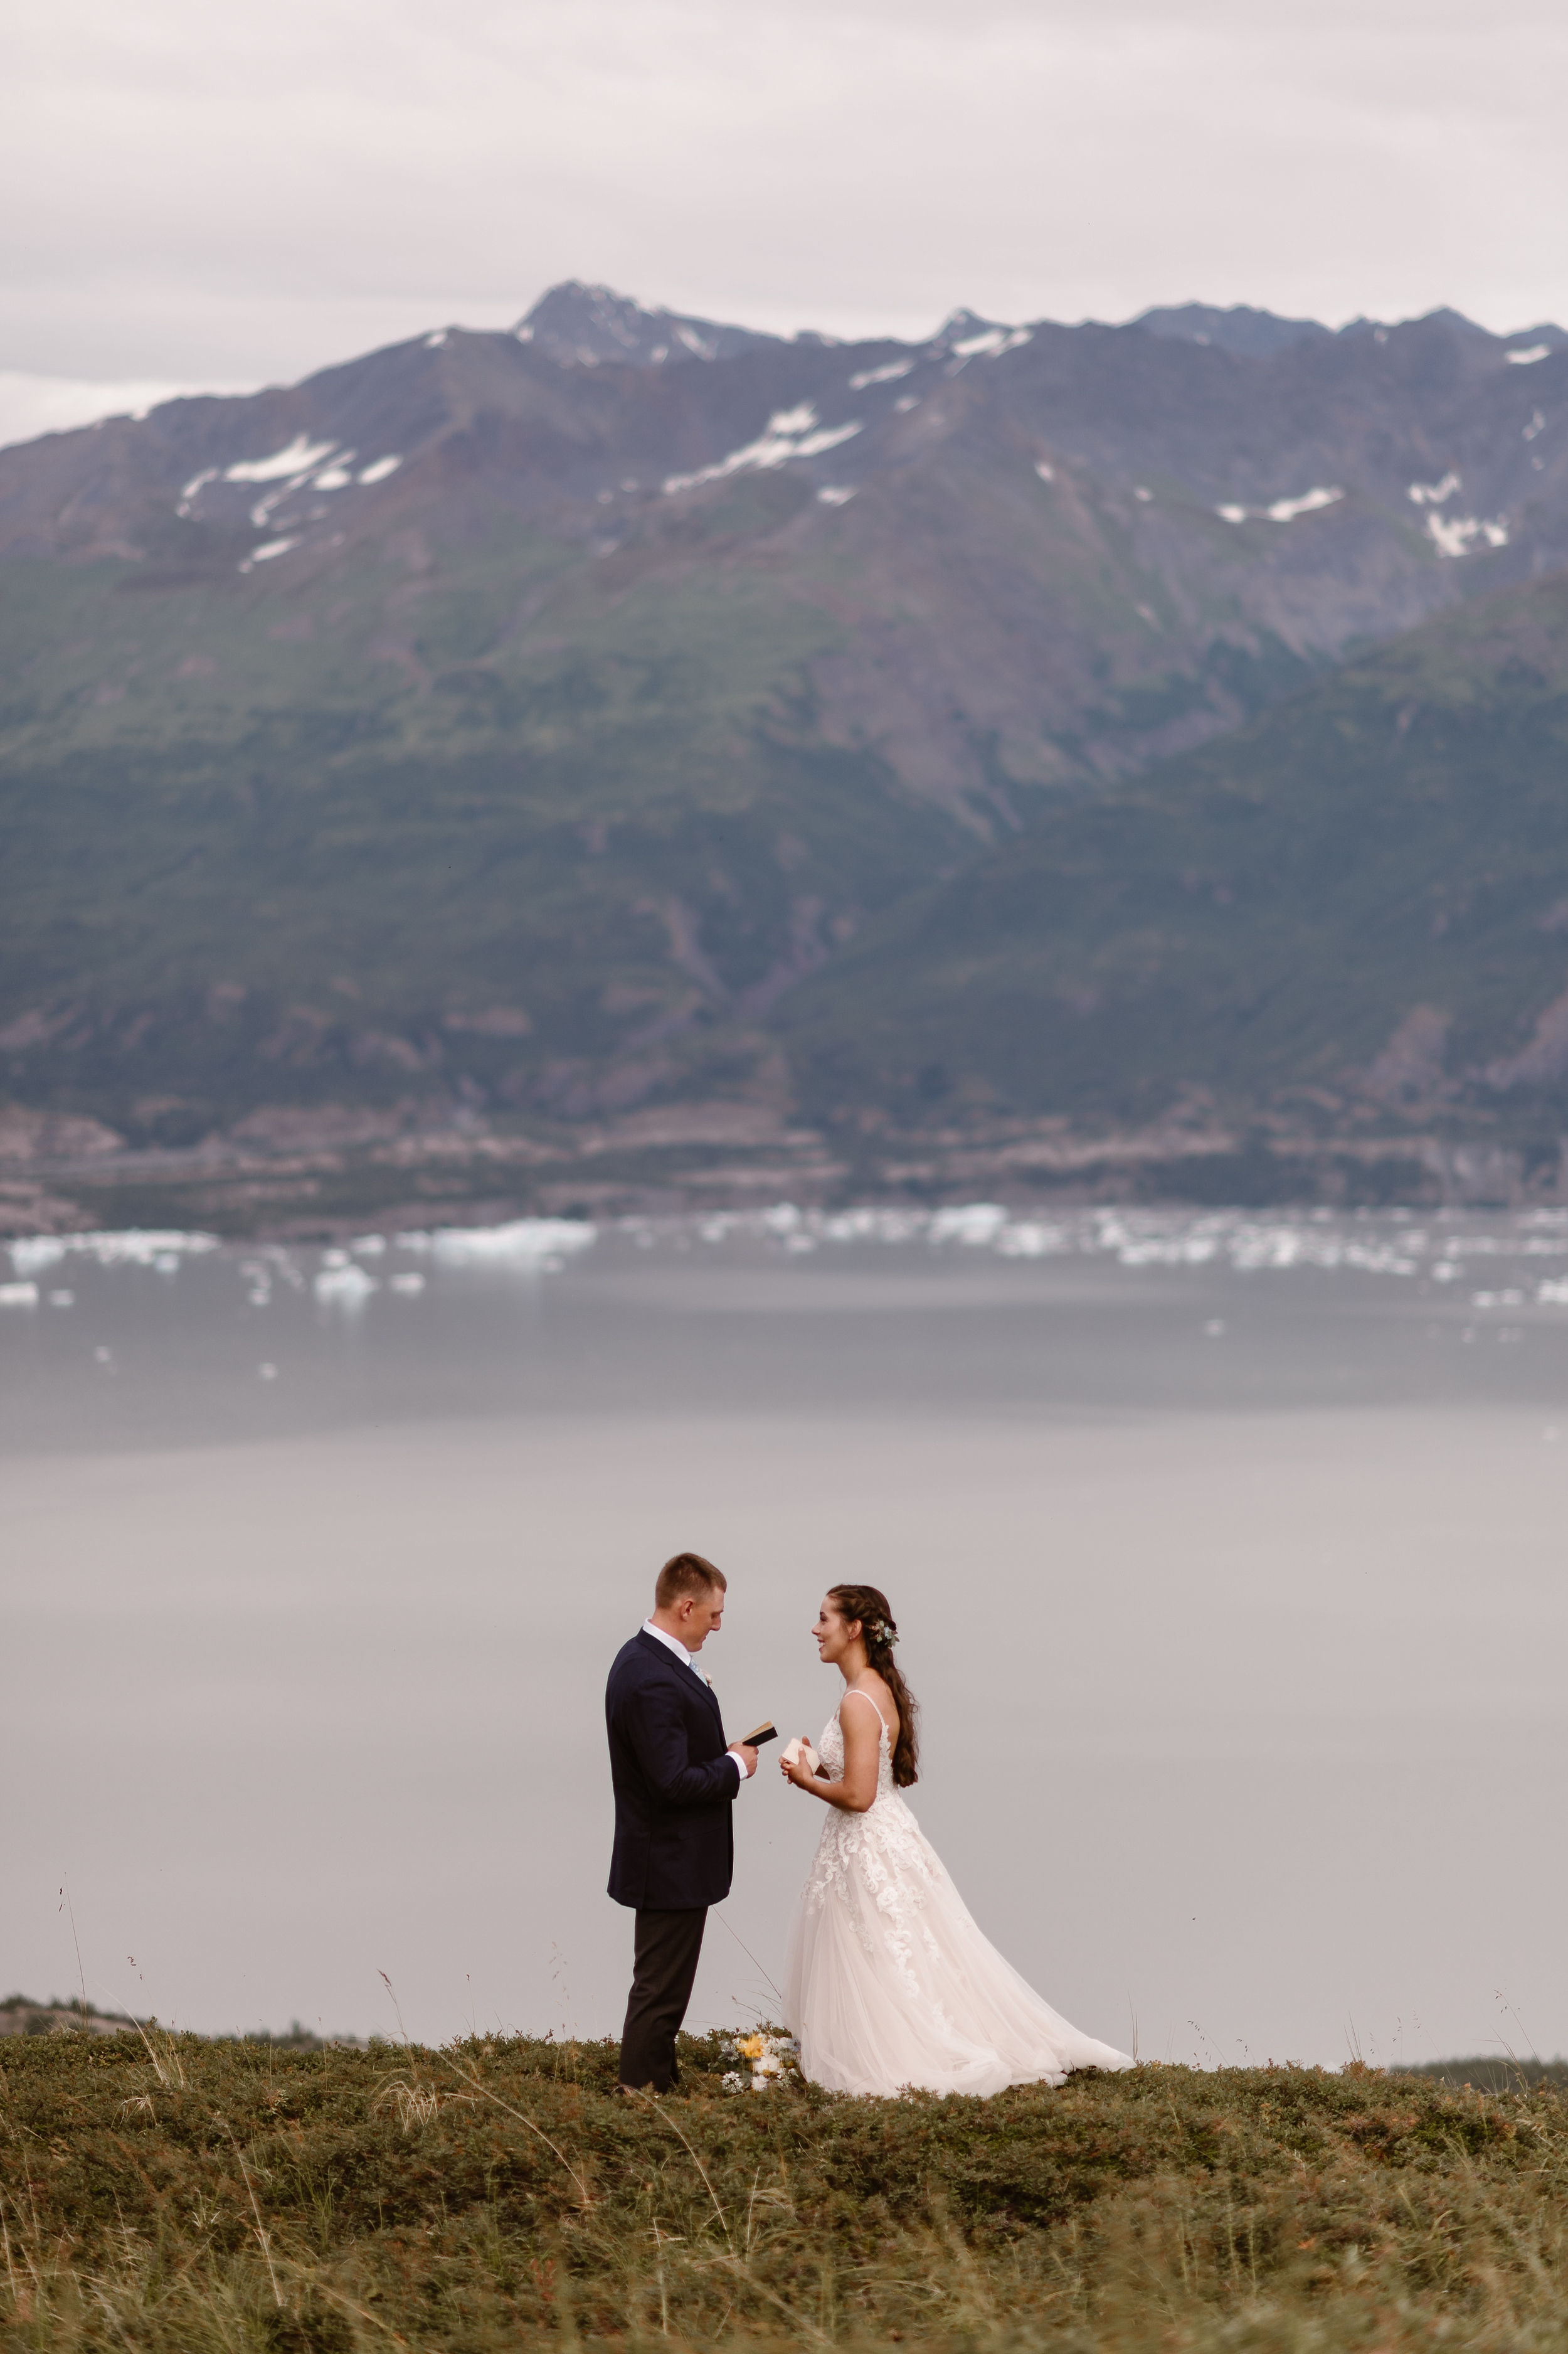 Jordyn and Connor, the bride and the groom, stand in front of a glacial lake with snowy and simultaneously green mountains in the background. The two hold their vow books in their hands as they stare at each other in this elopement ceremony.